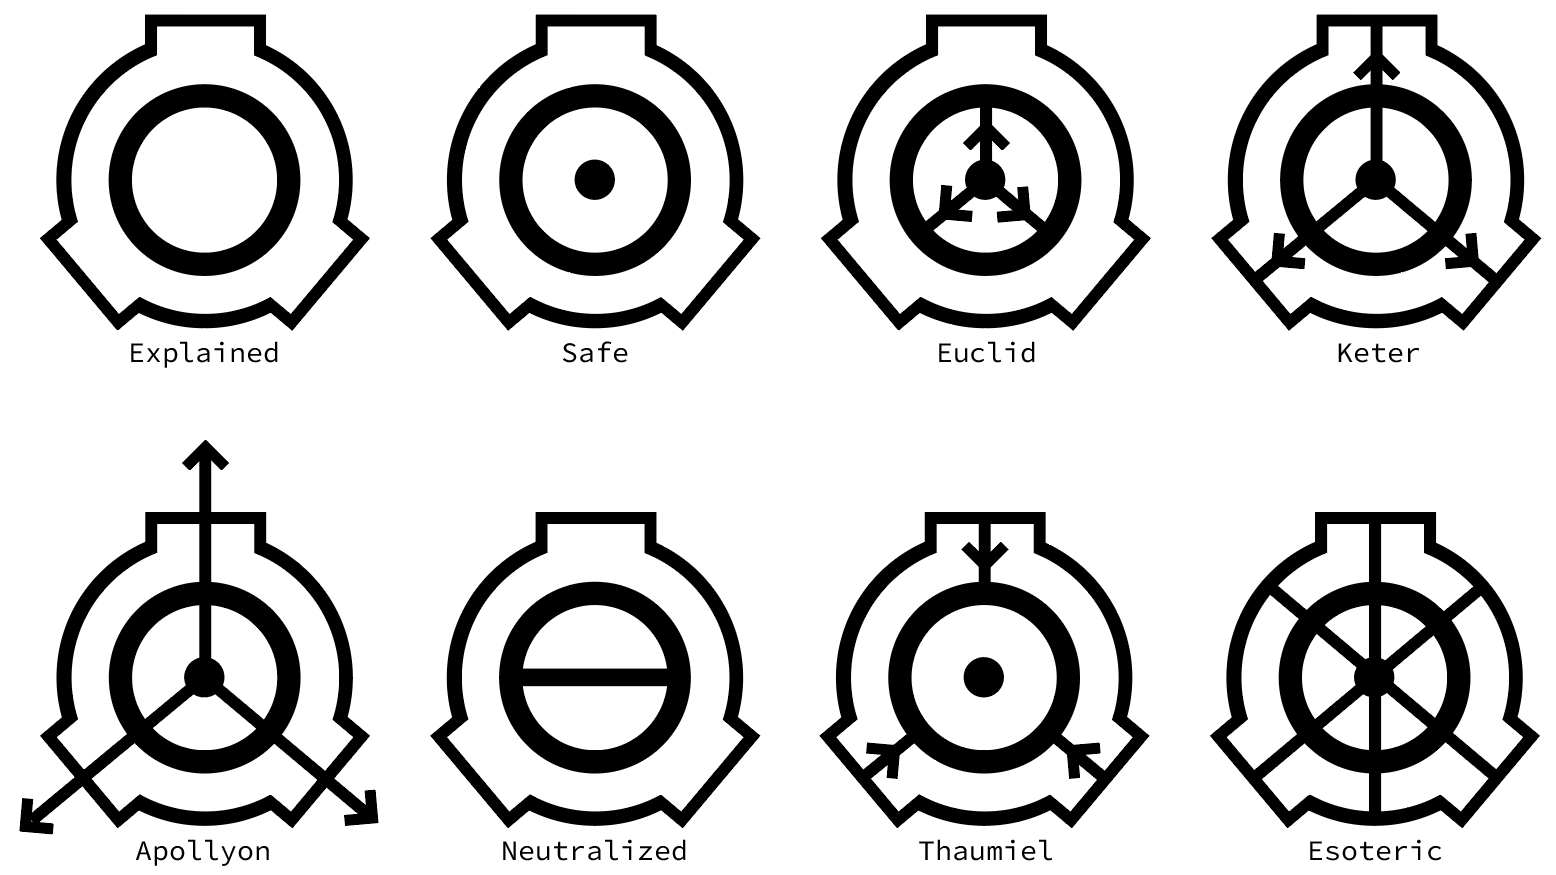 Made My Own Take On The Object Classes What Do You Guys